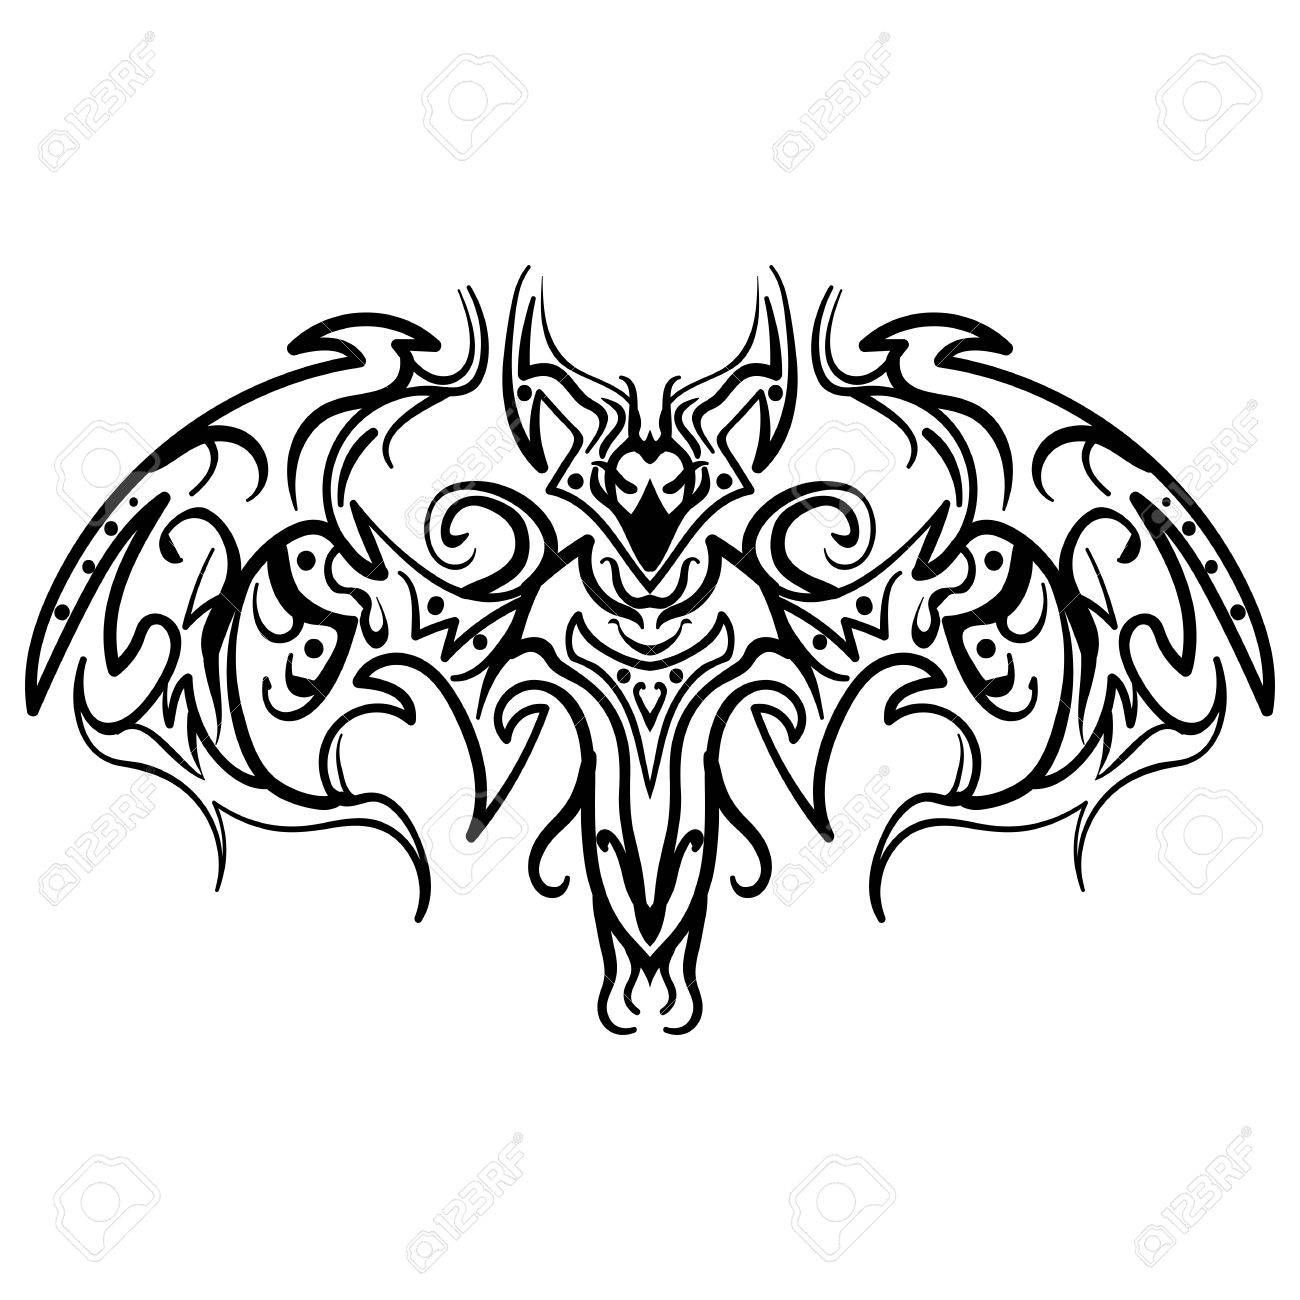 a84d196a0 The stylized image of a doodle bat. Vector stylized of ink sketch doodle bat .